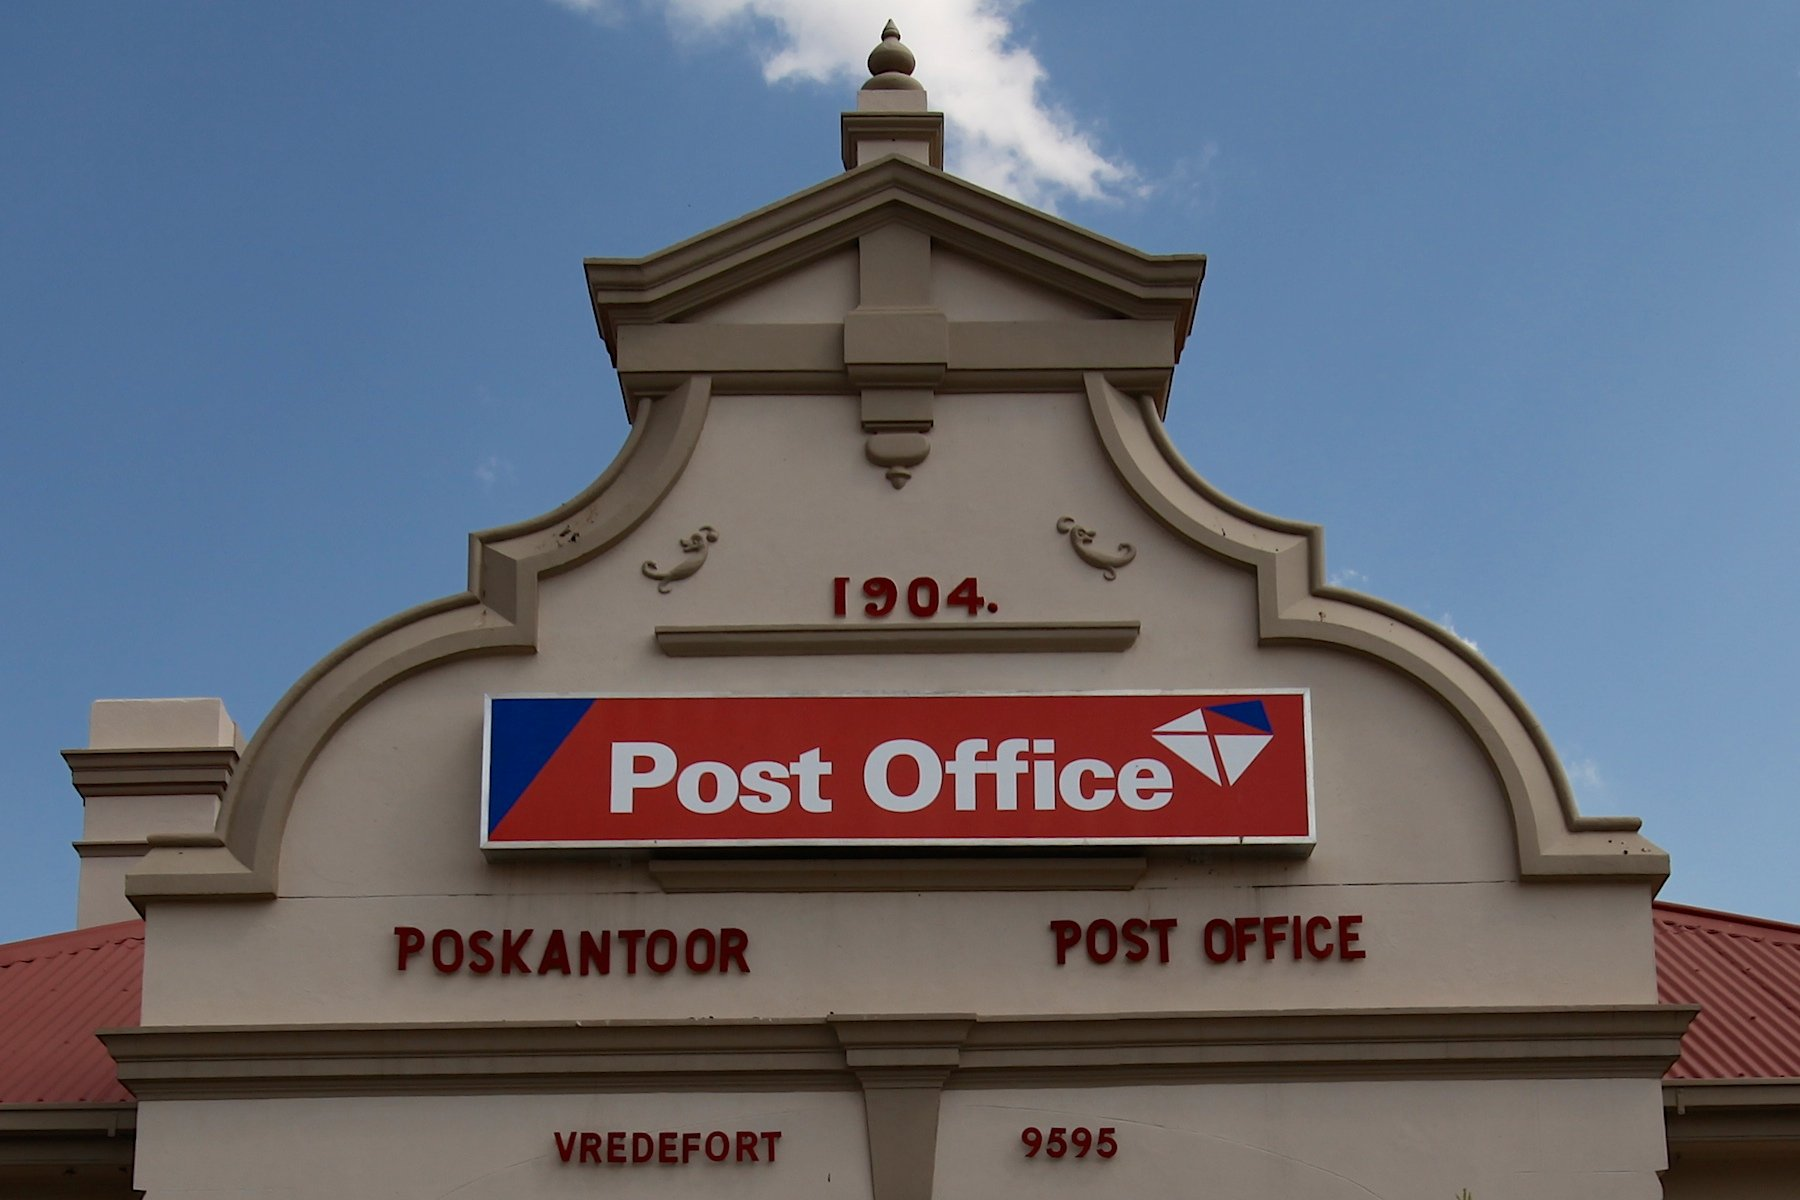 Post Office owes R842-million to worker pension fund and medical aid